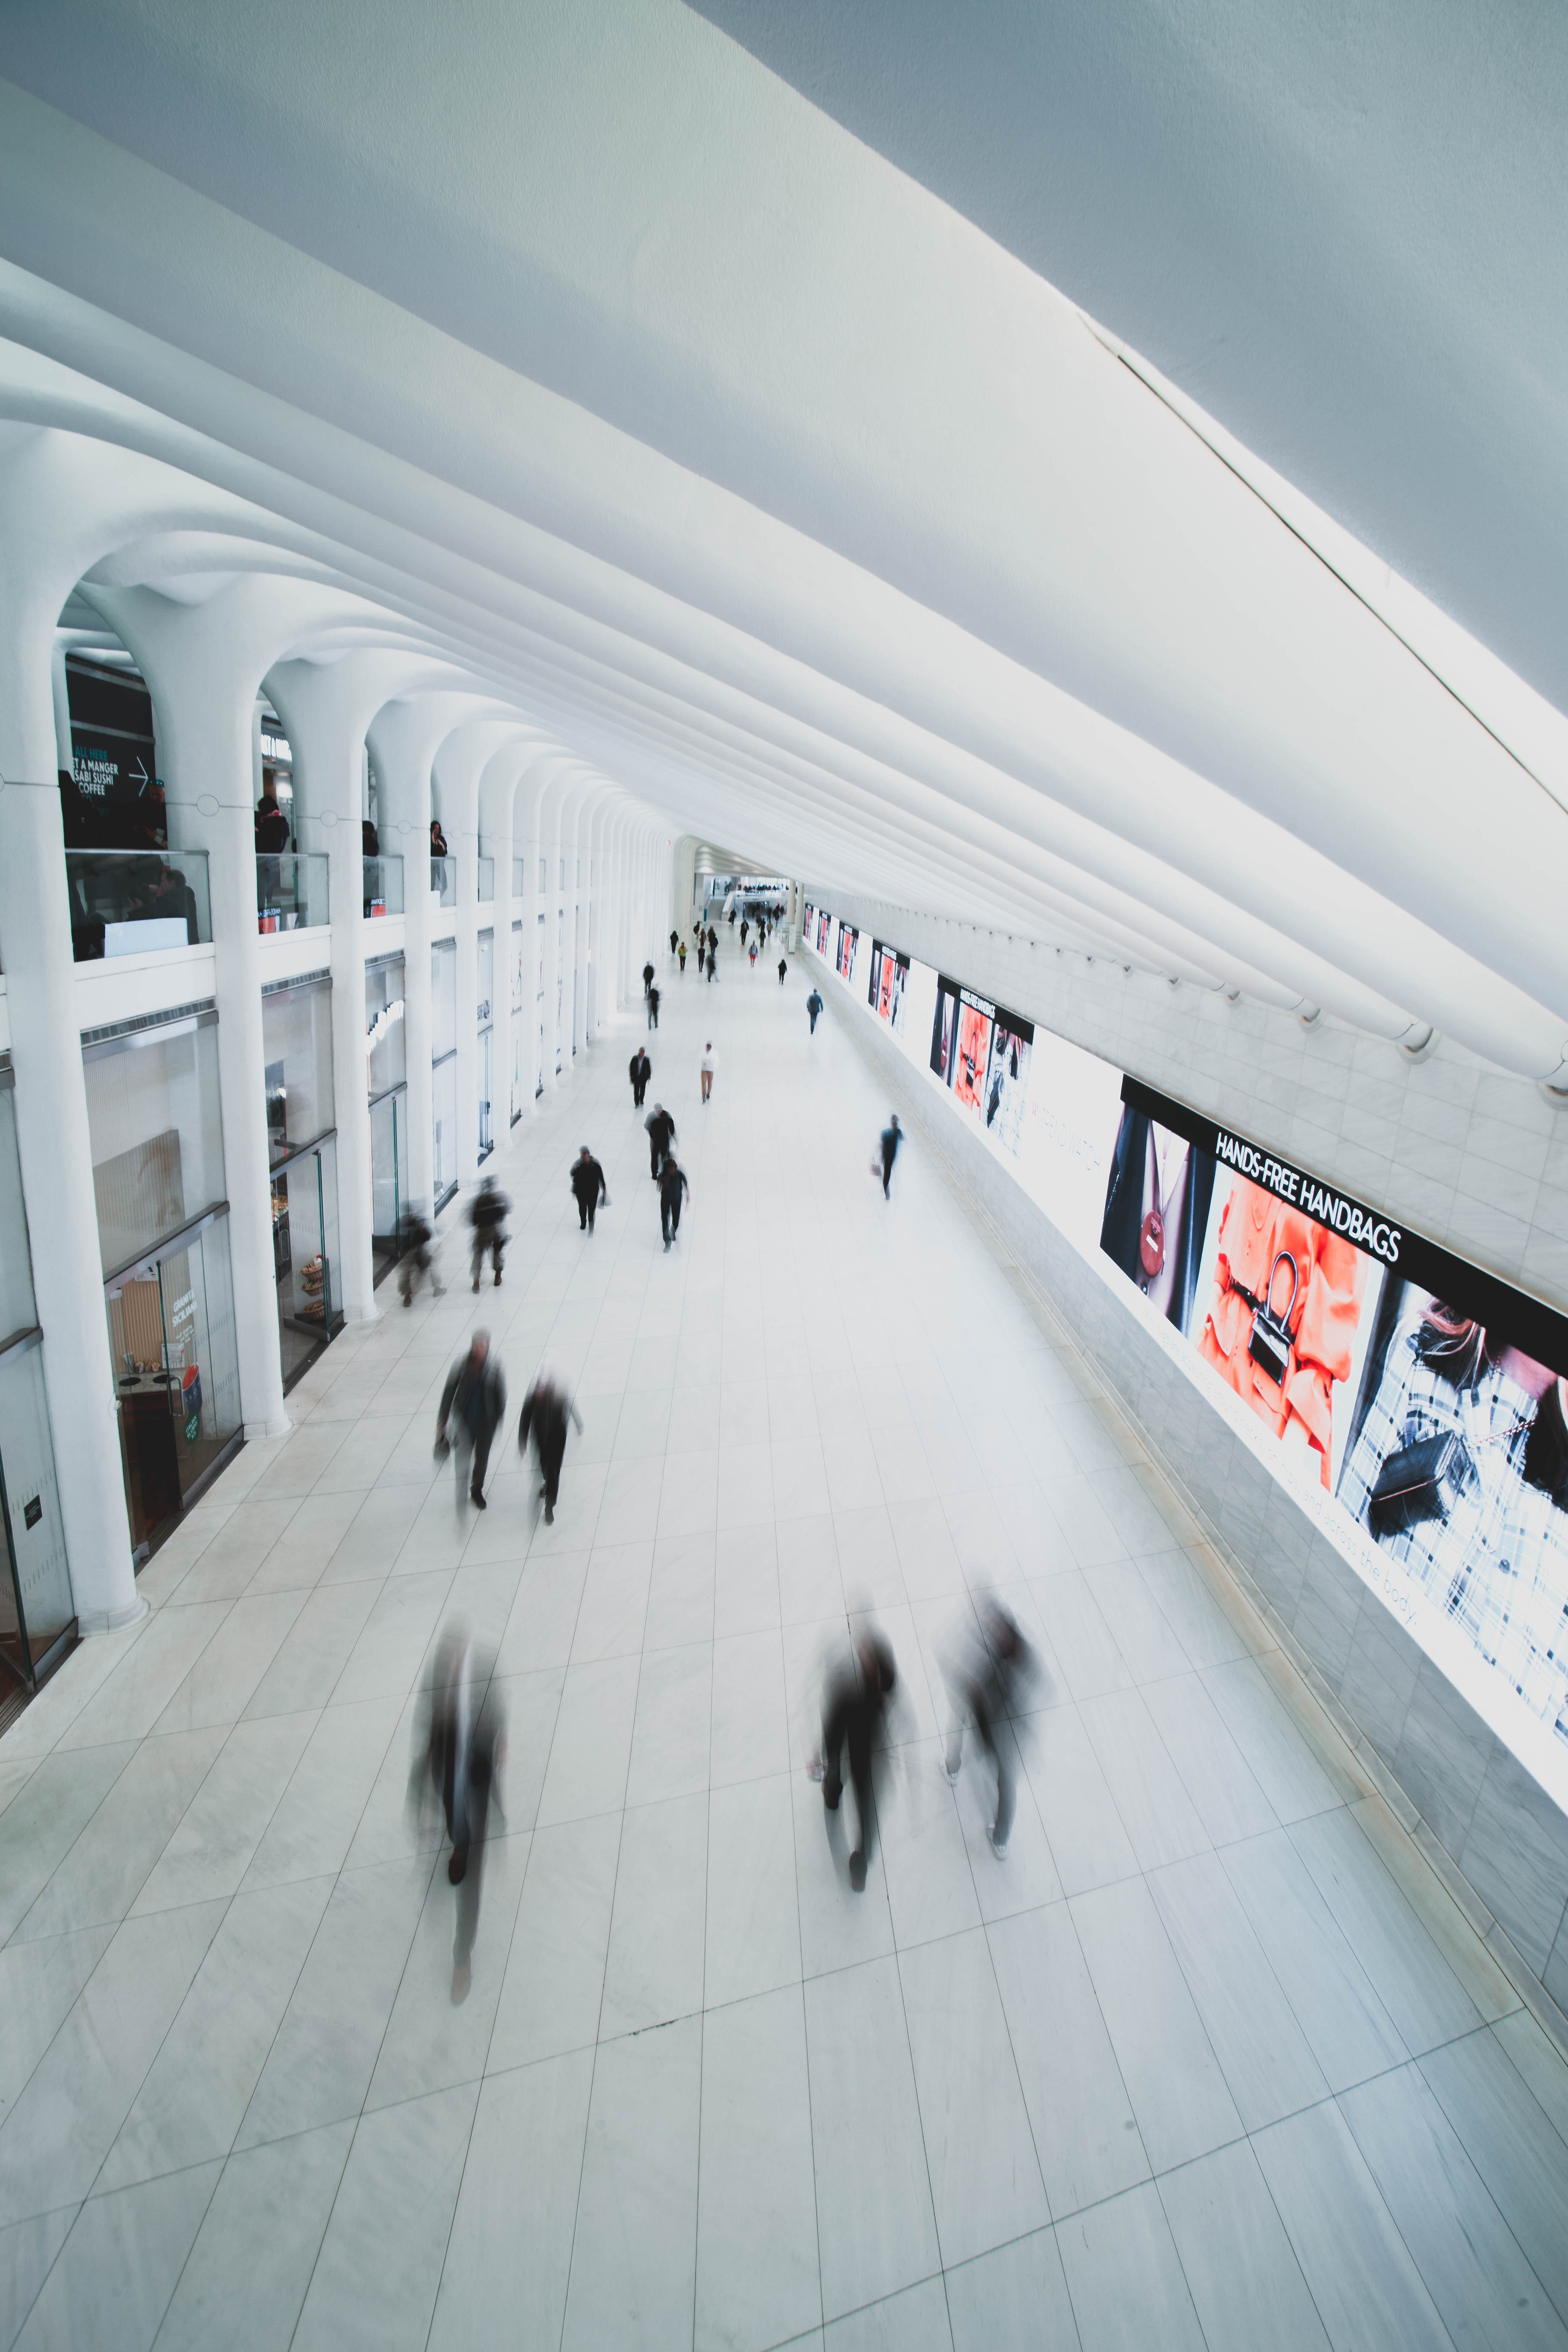 High-angle shot of people inside a white-painted hallway